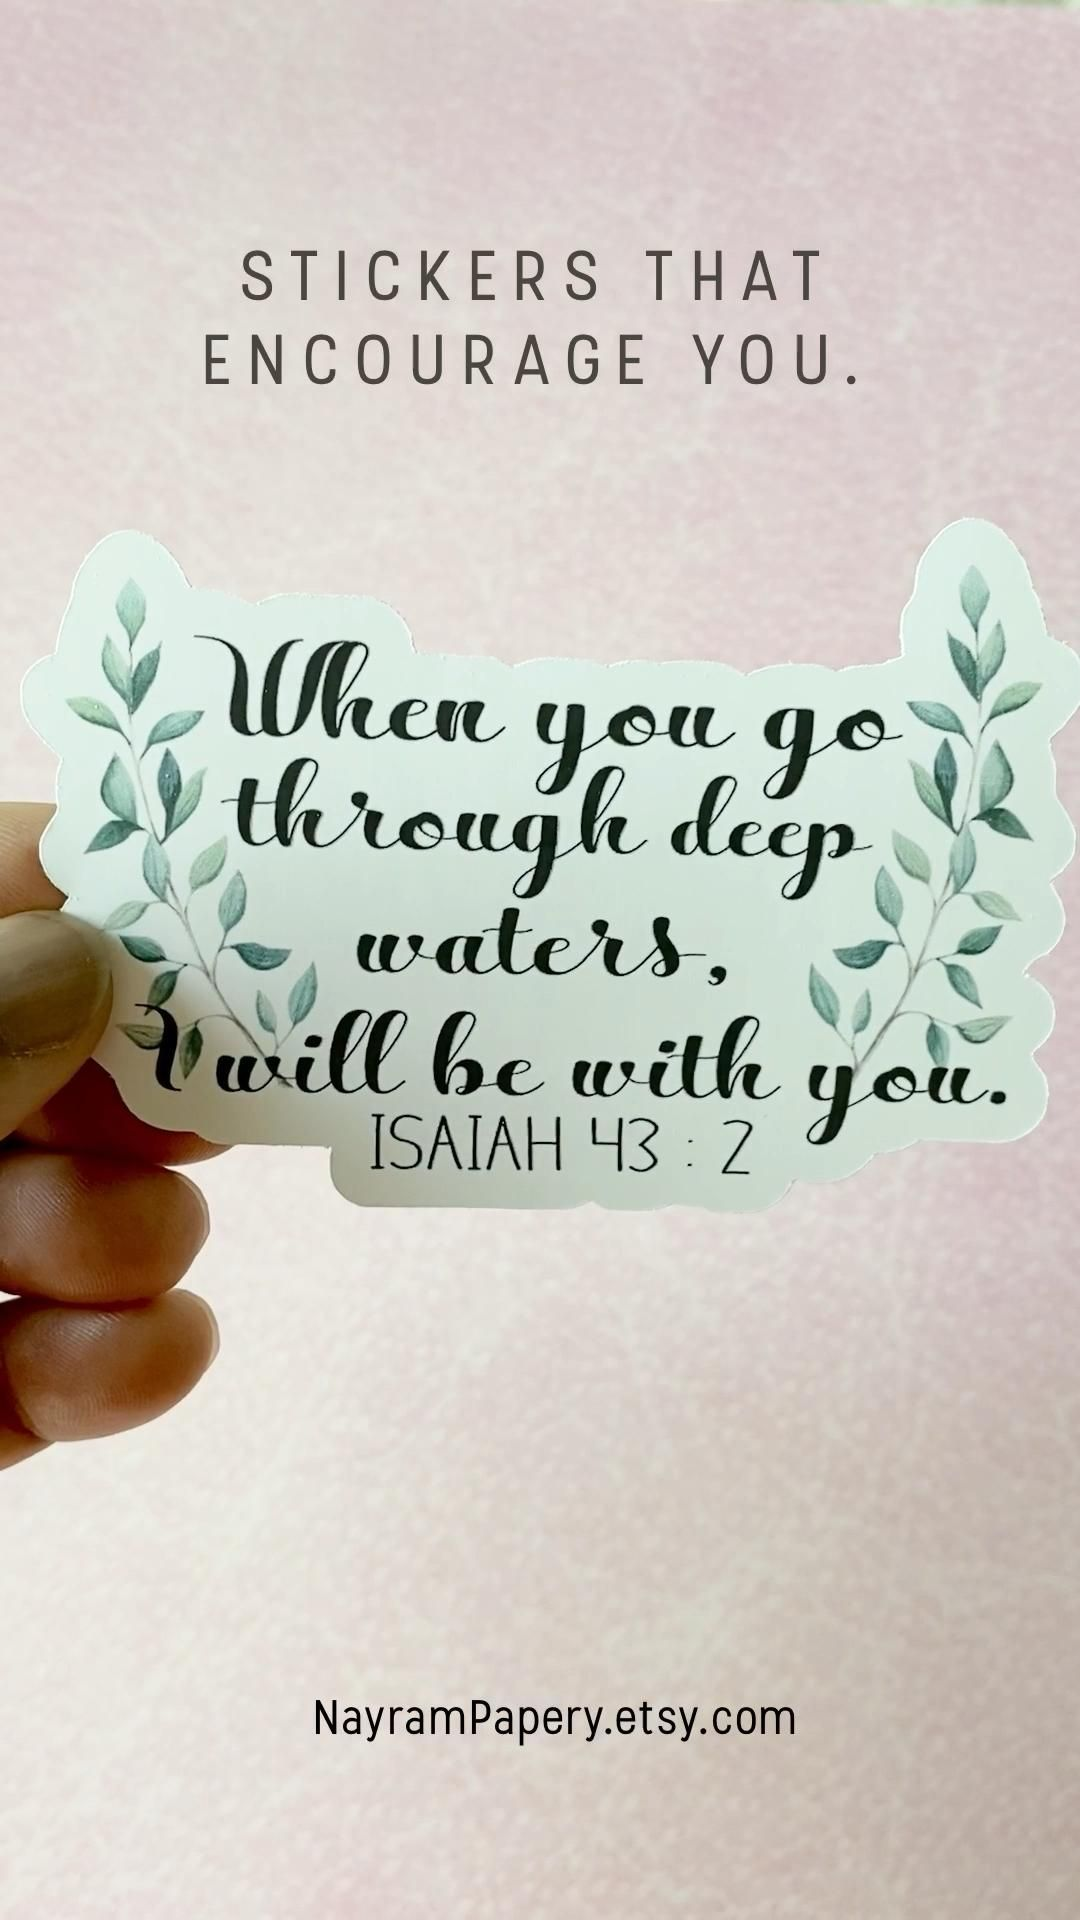 I will be with you sticker